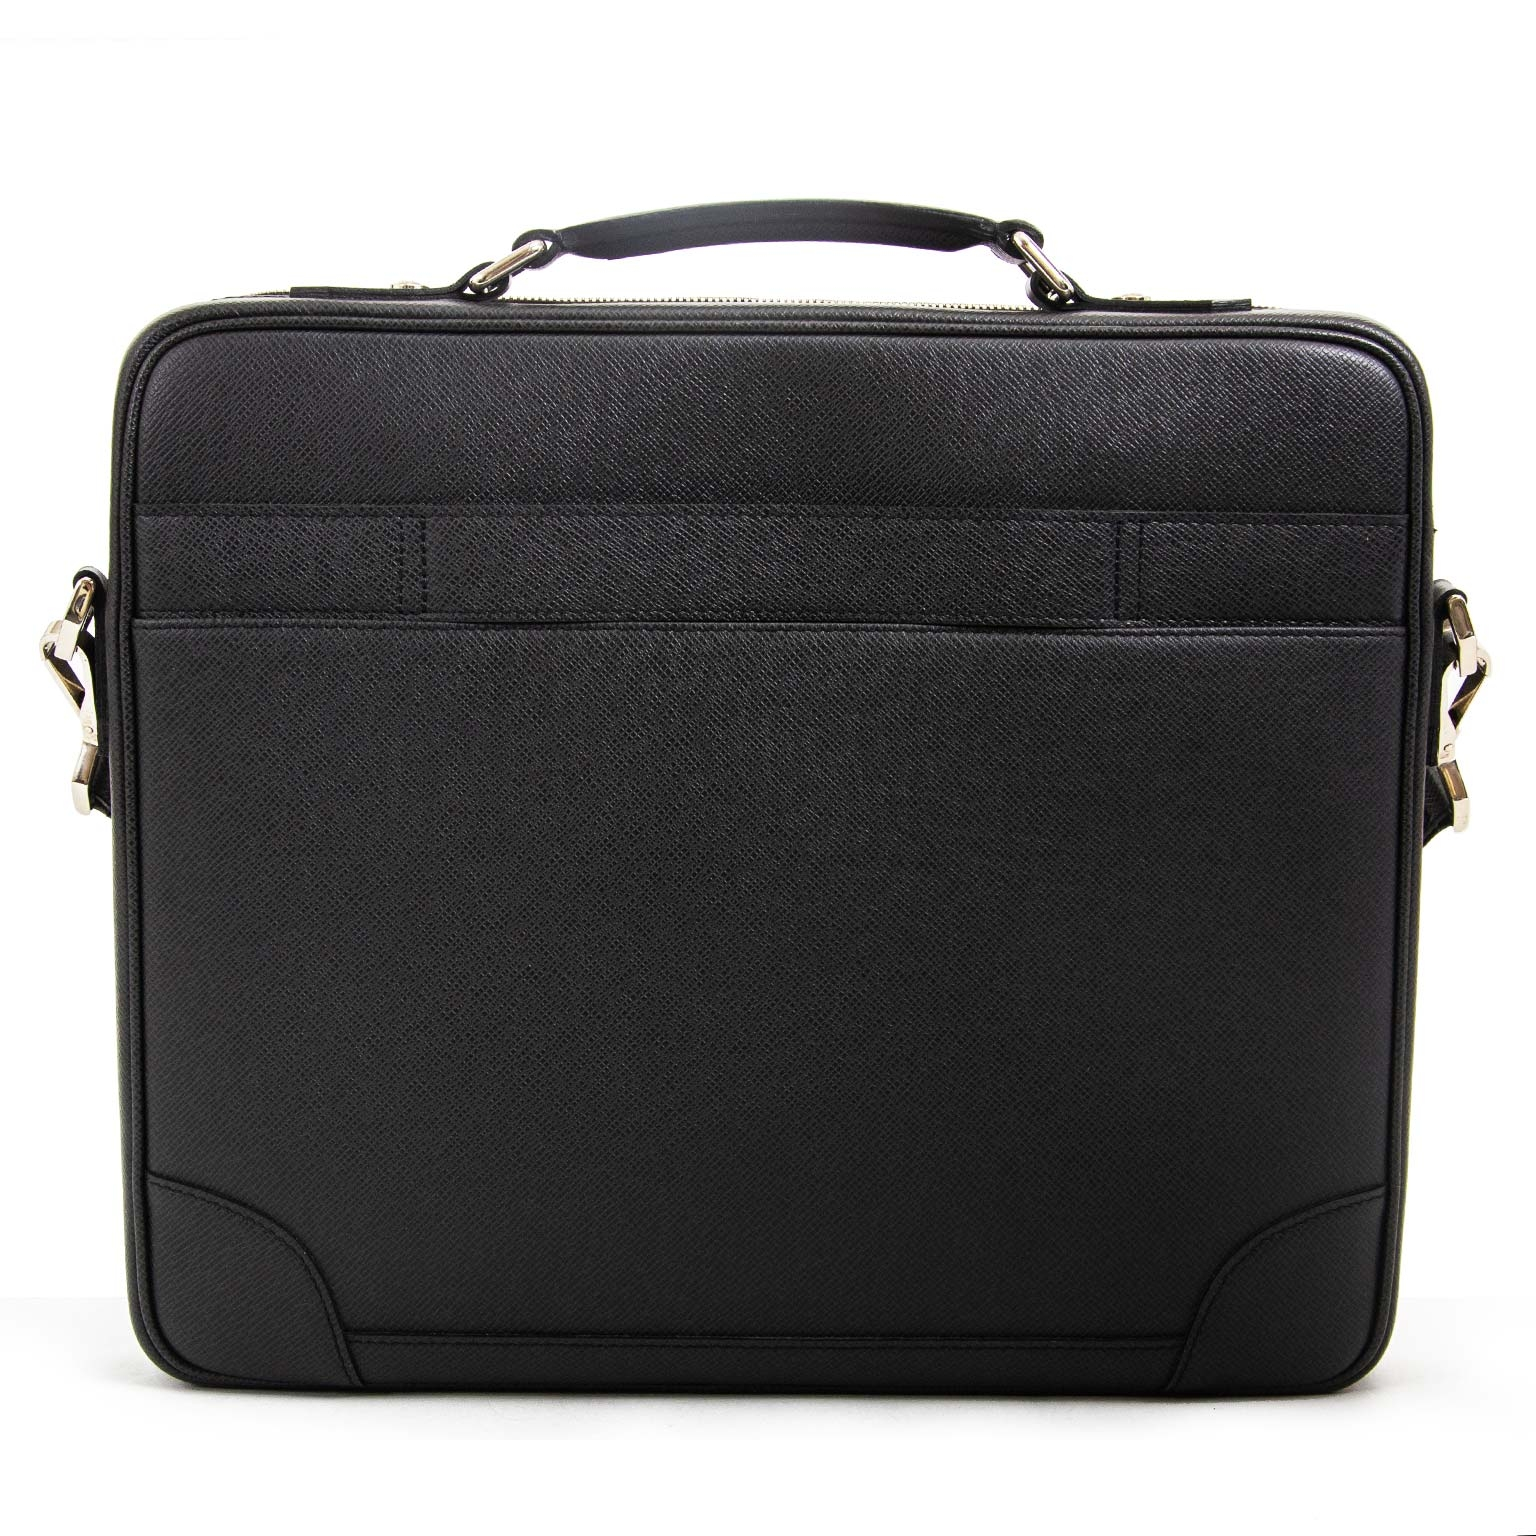 louis vuitton black taiga leather odessa computer case bag now for sale at labellov vintage fashion webshop belgium